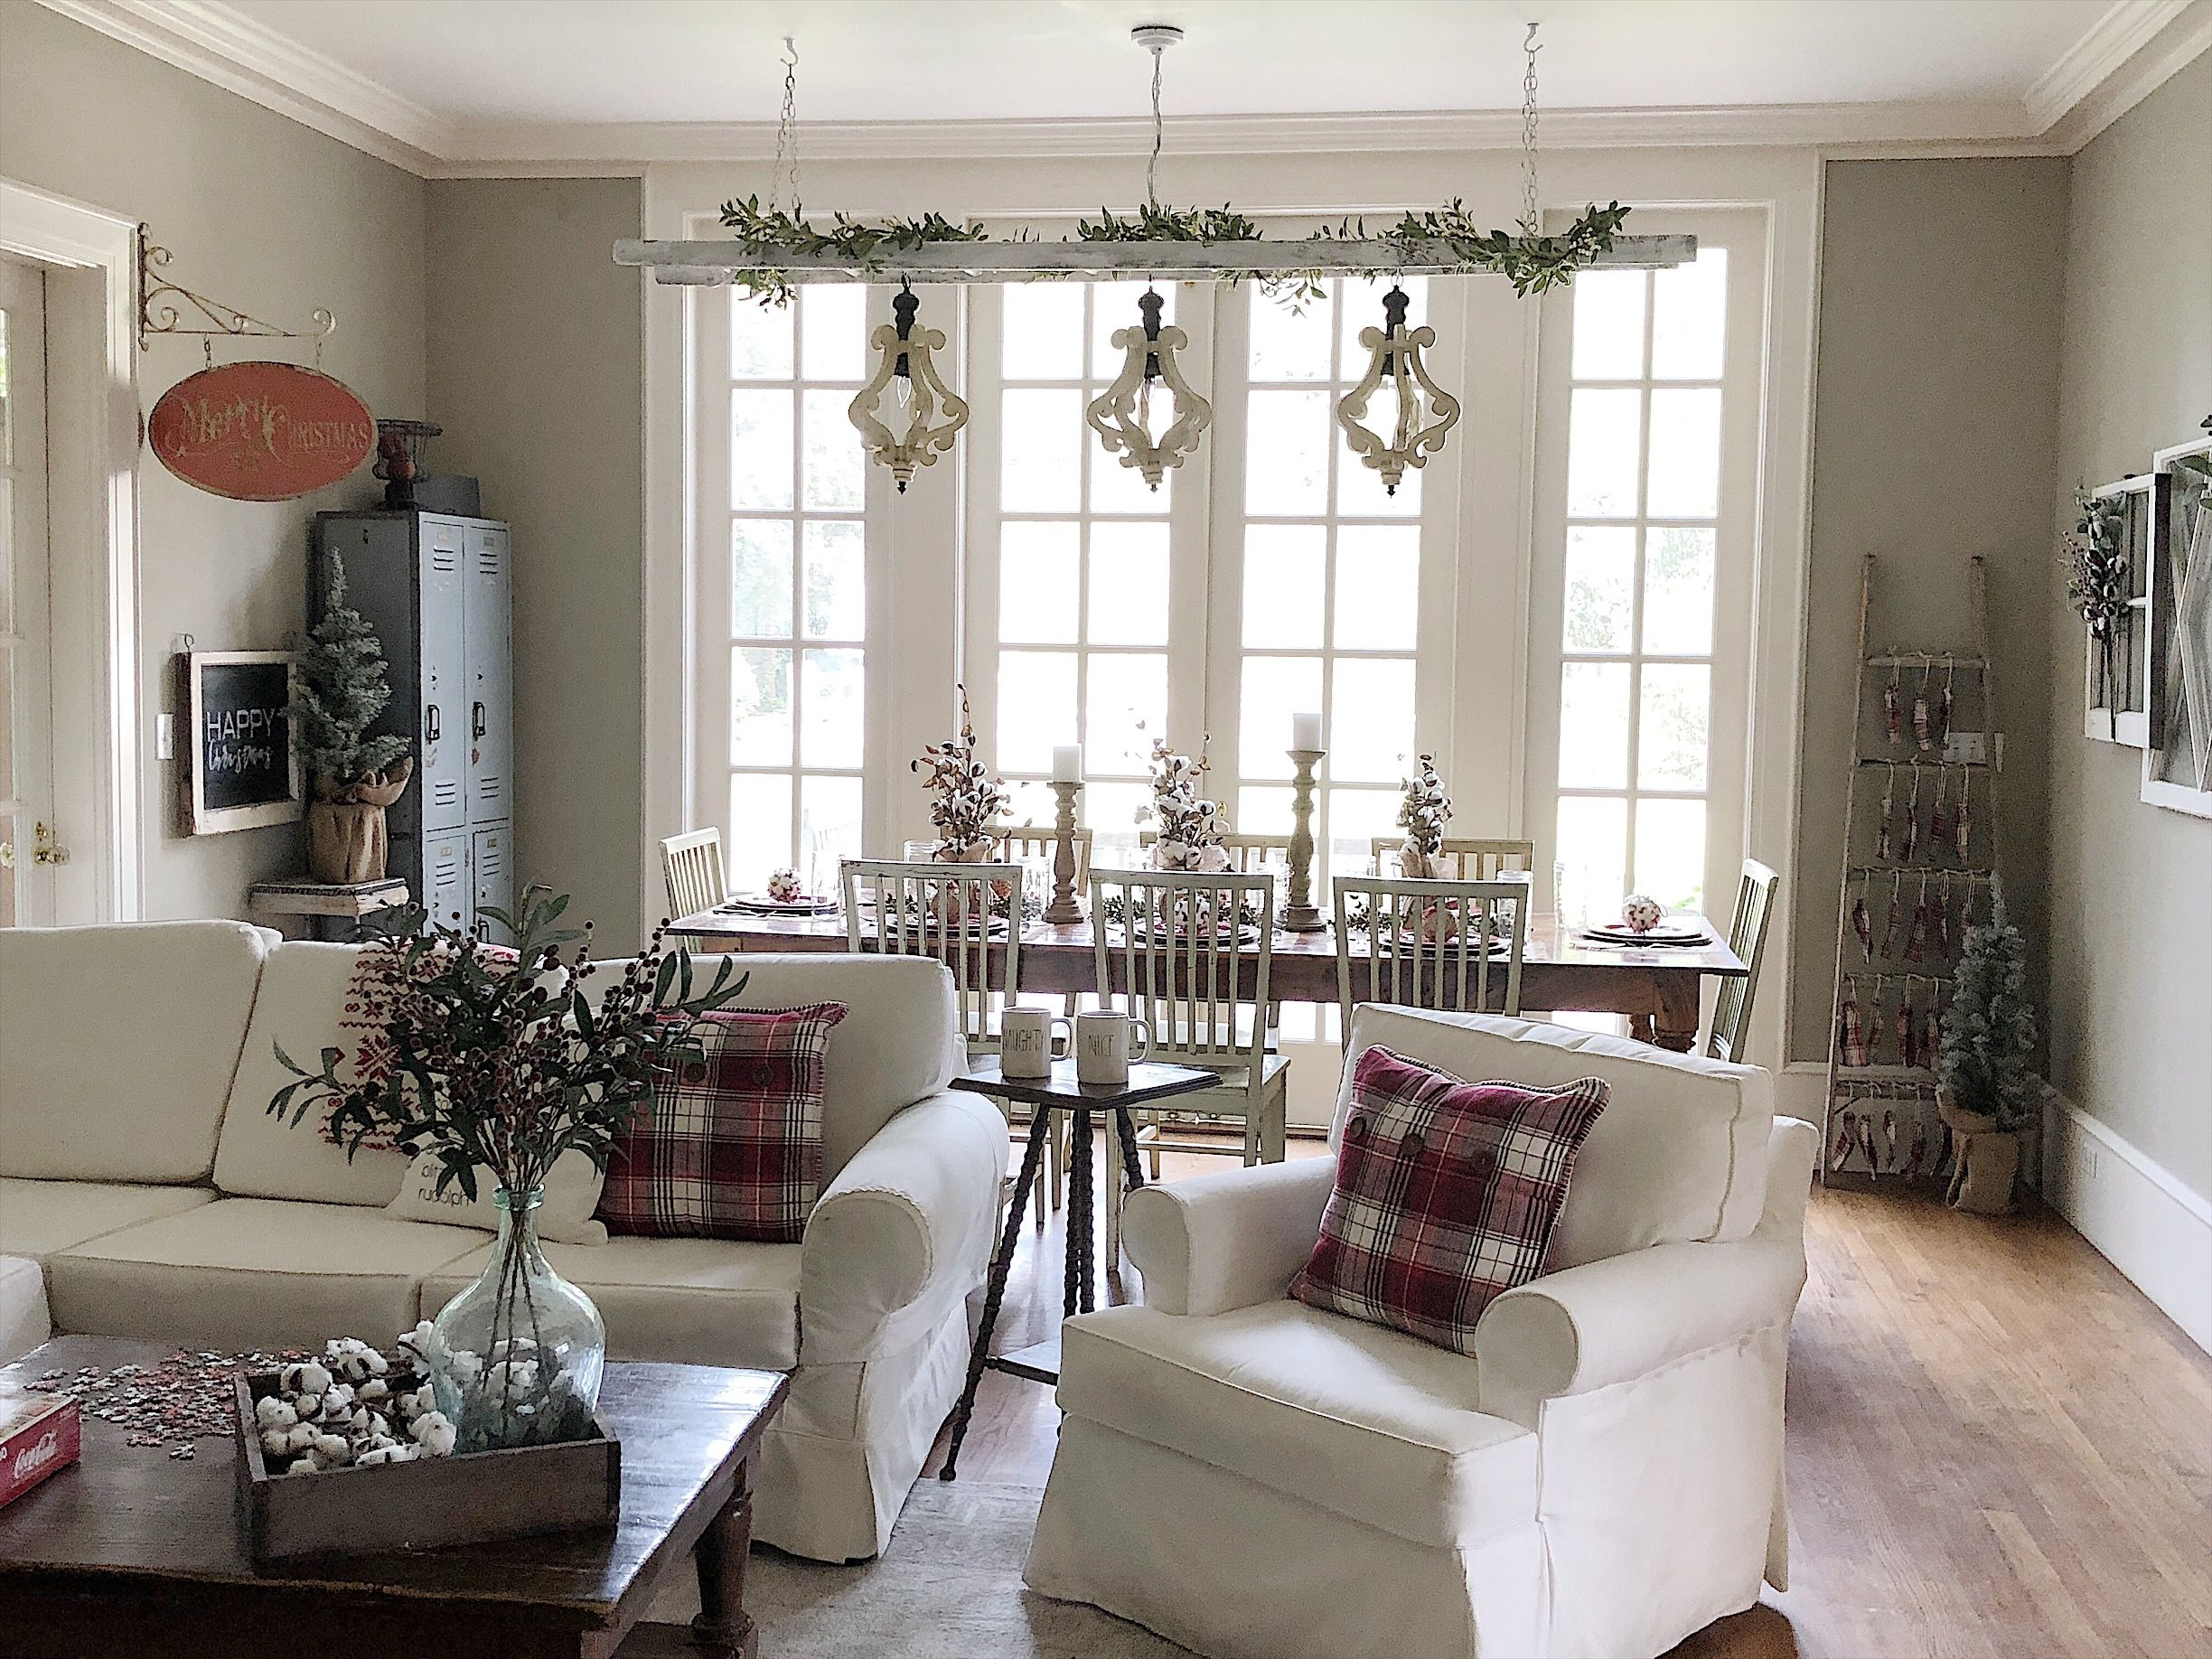 A Farmhouse Christmas with Hobby Lobby | Home decor, Decor ...